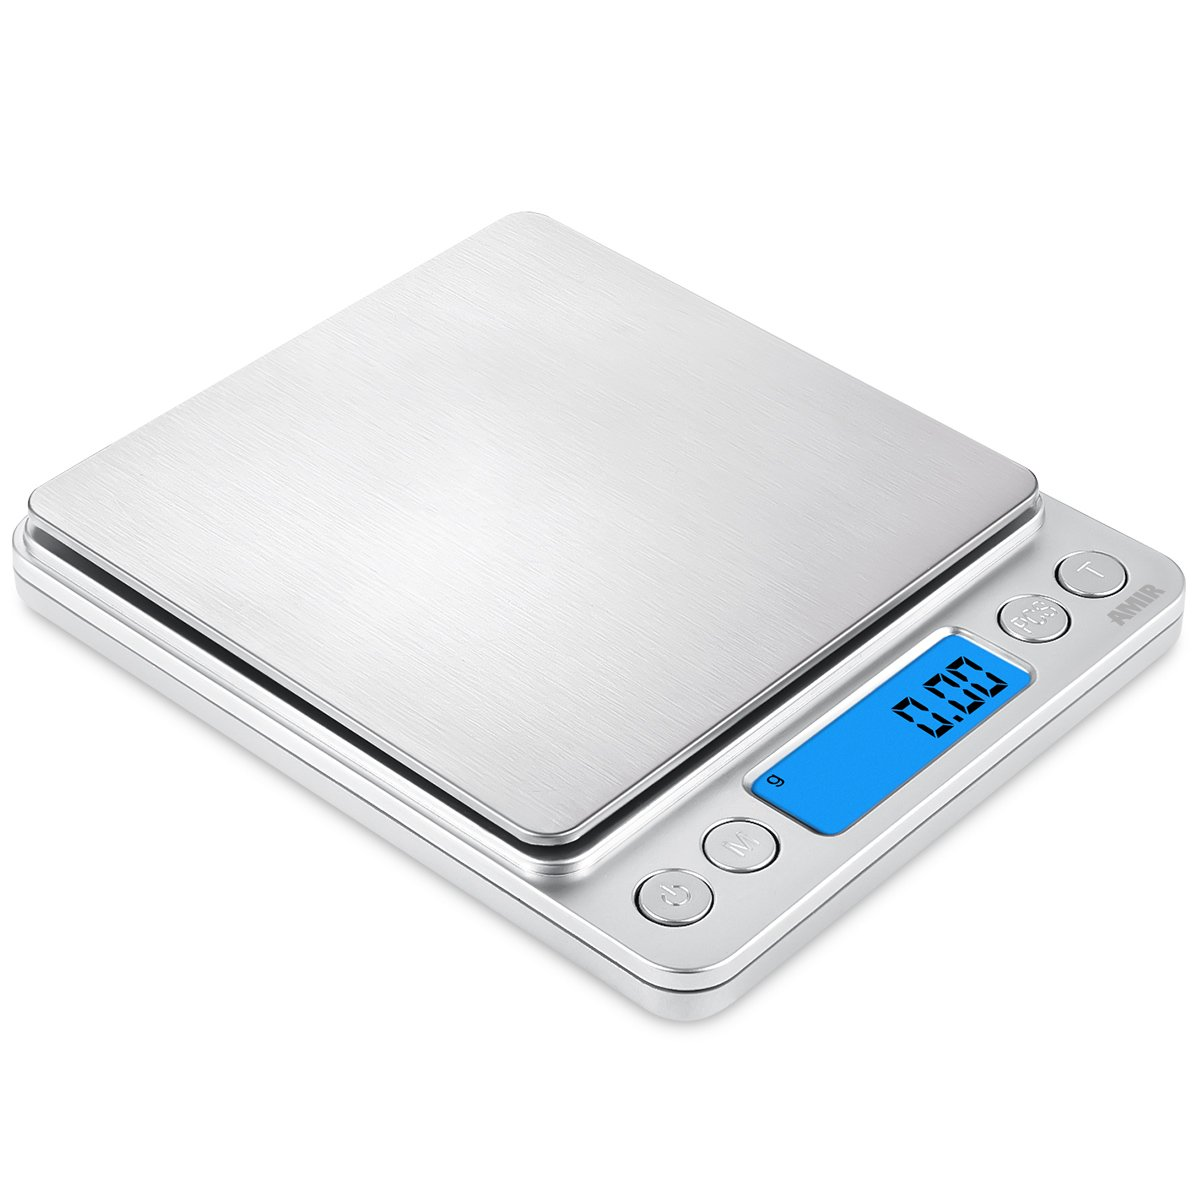 AMIR Digital Kitchen Scale, 500g/ 0.01g Mini Pocket Jewelry Scale, Cooking Food Scale with Back-Lit LCD Display, 2 Trays, 6 Units, Auto Off, Tare, PCS Function, Stainless Steel, Batteries Included by AMIR